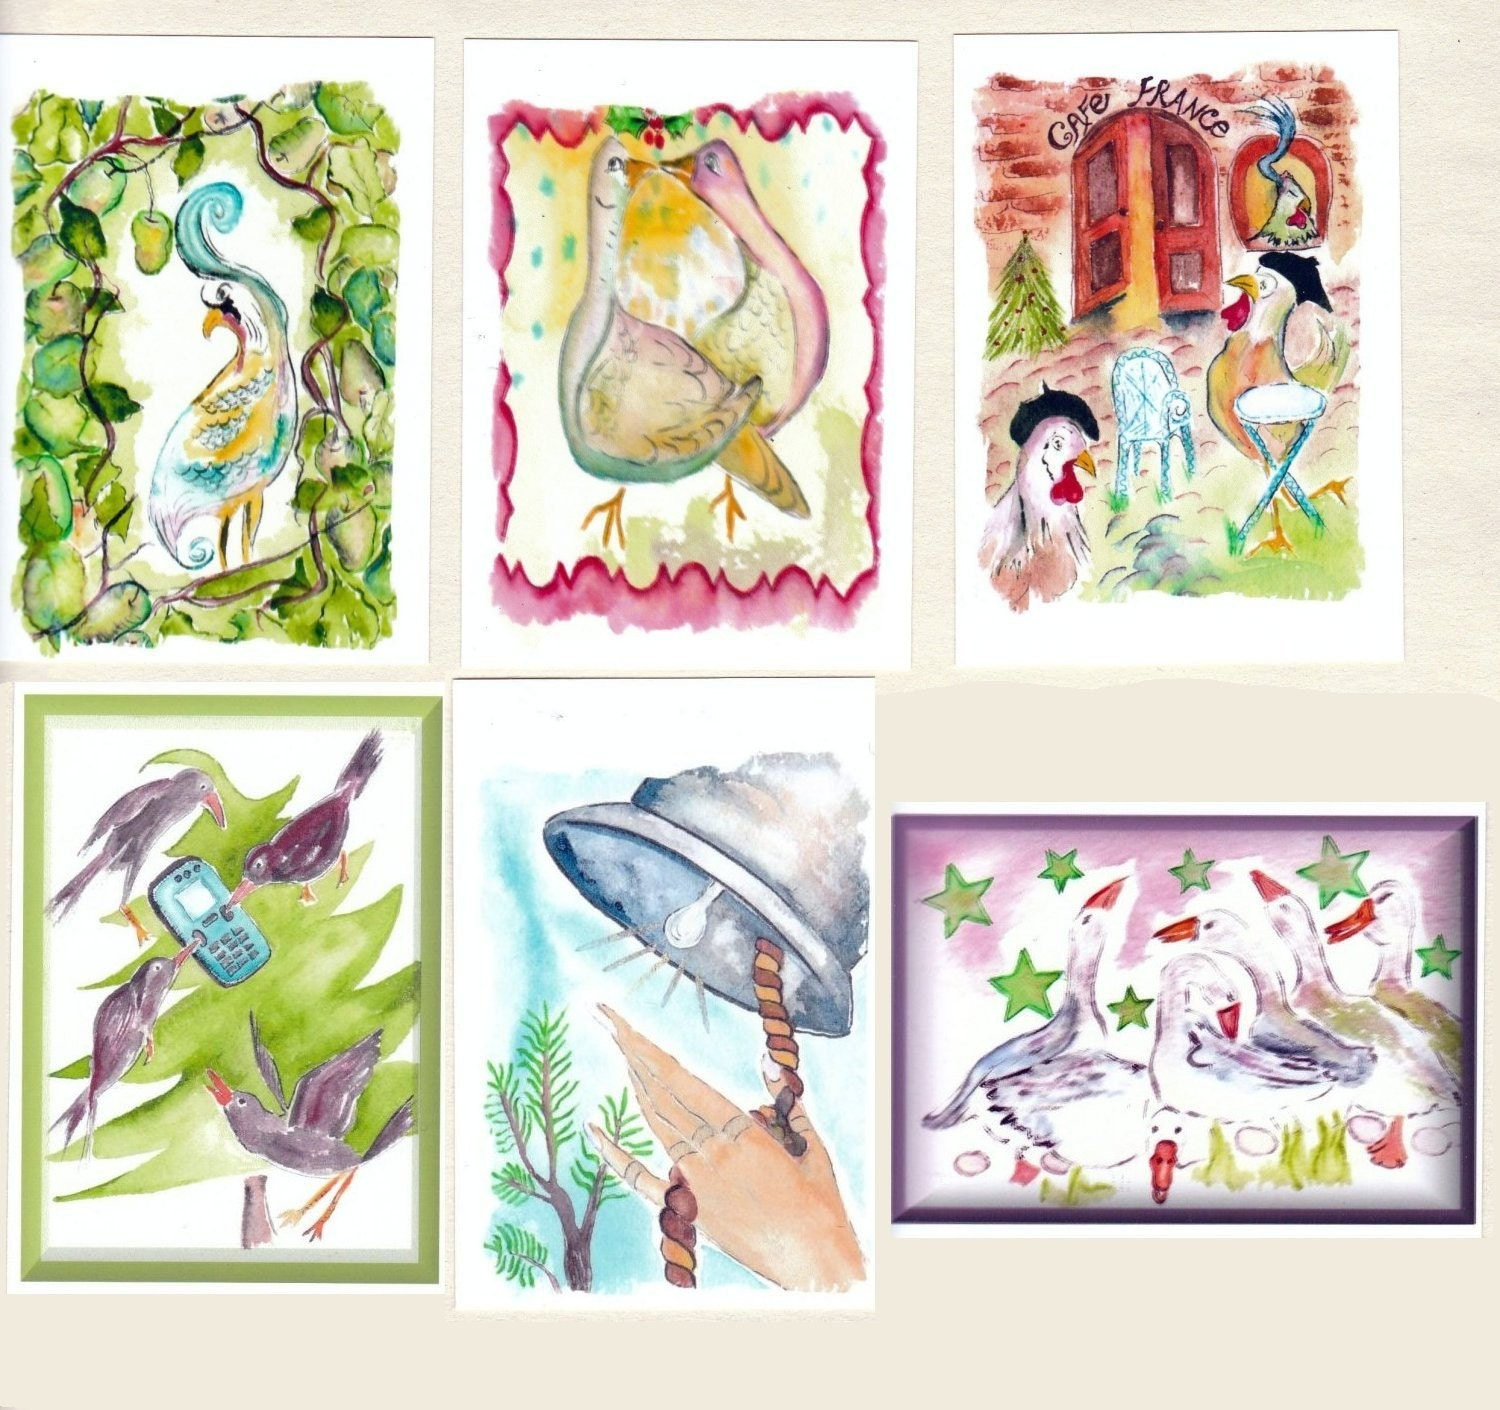 ACEO 12 Days of Christmas prints baseball card size